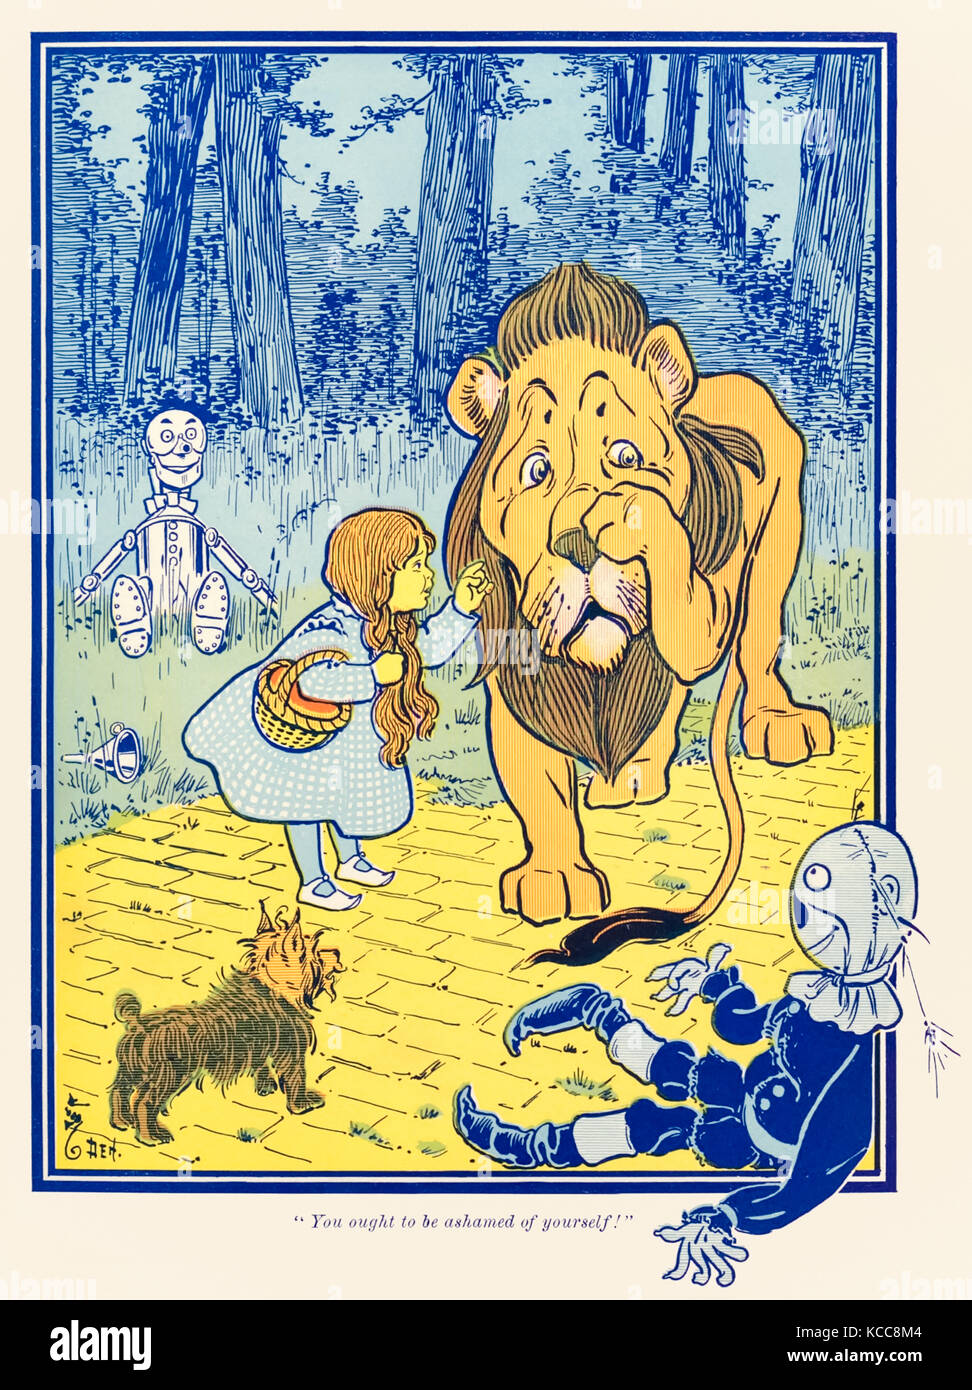 """You ought to be ashamed of yourself!"" from 'The Wonderful Wizard of Oz' by L. Frank Baum (1856-1919) with pictures - Stock Image"